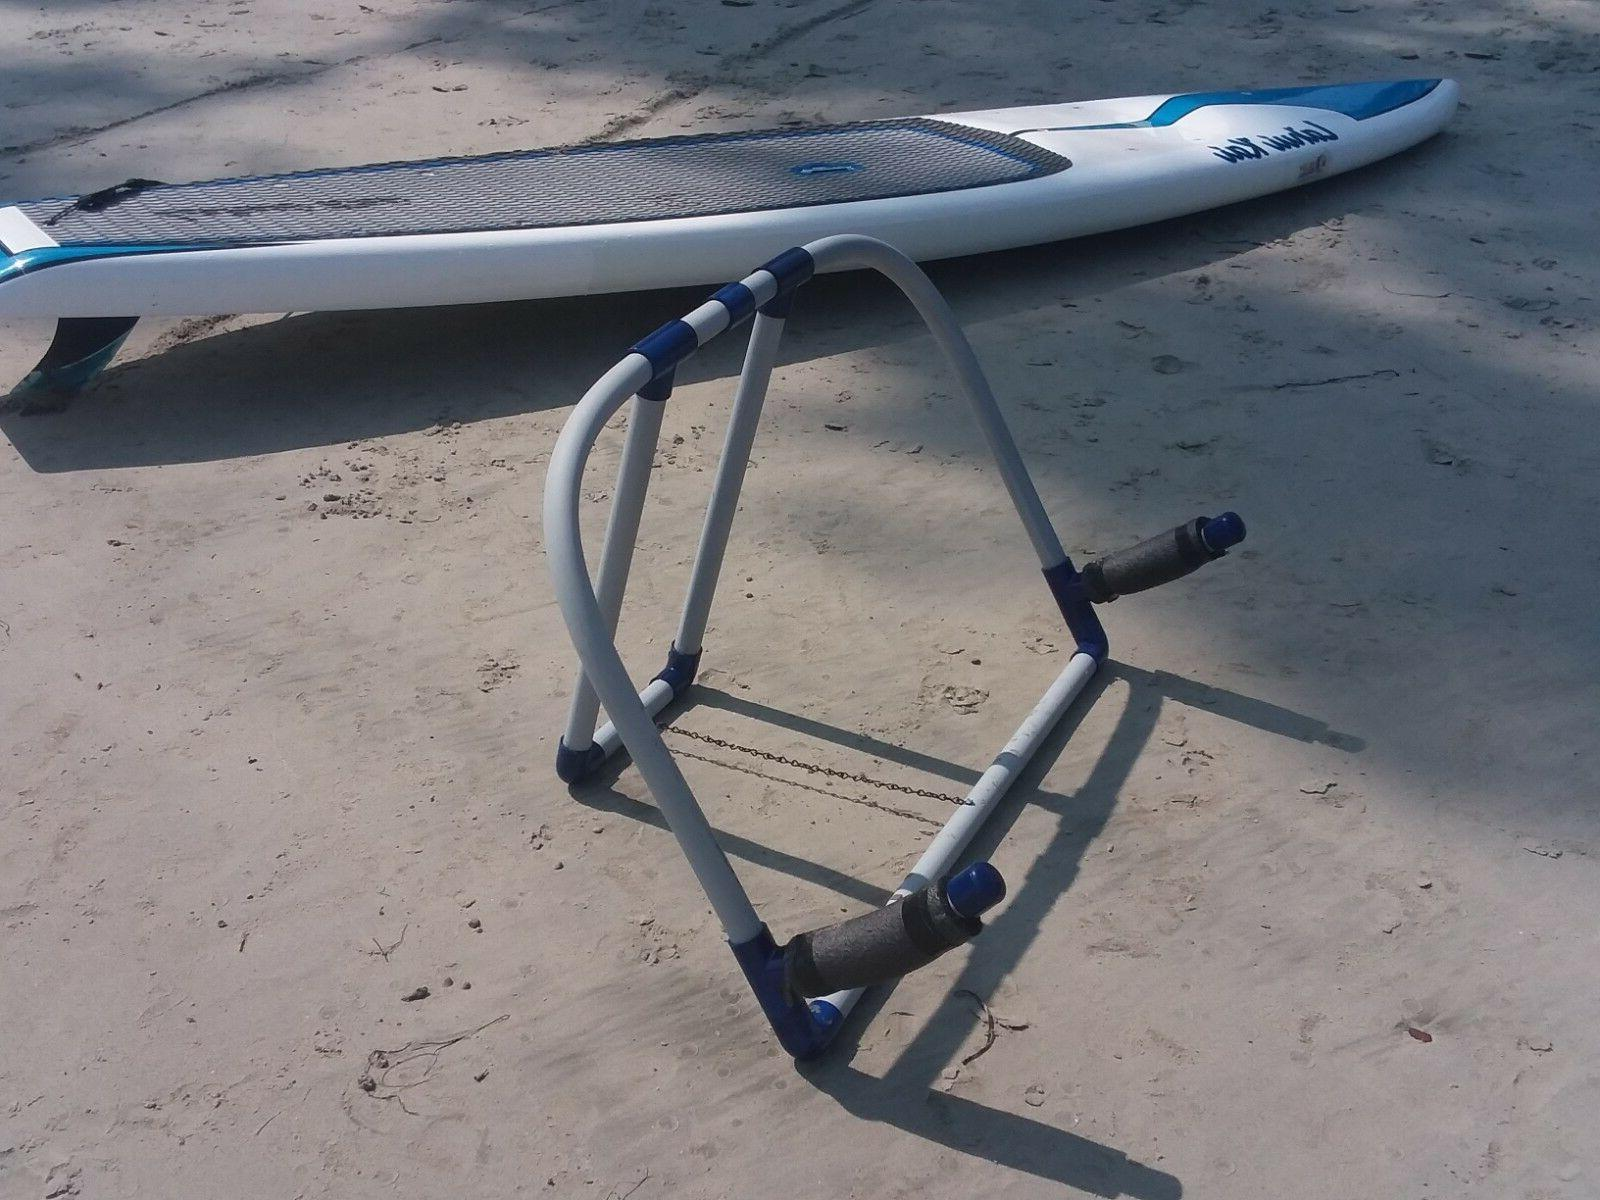 stand up board accessories